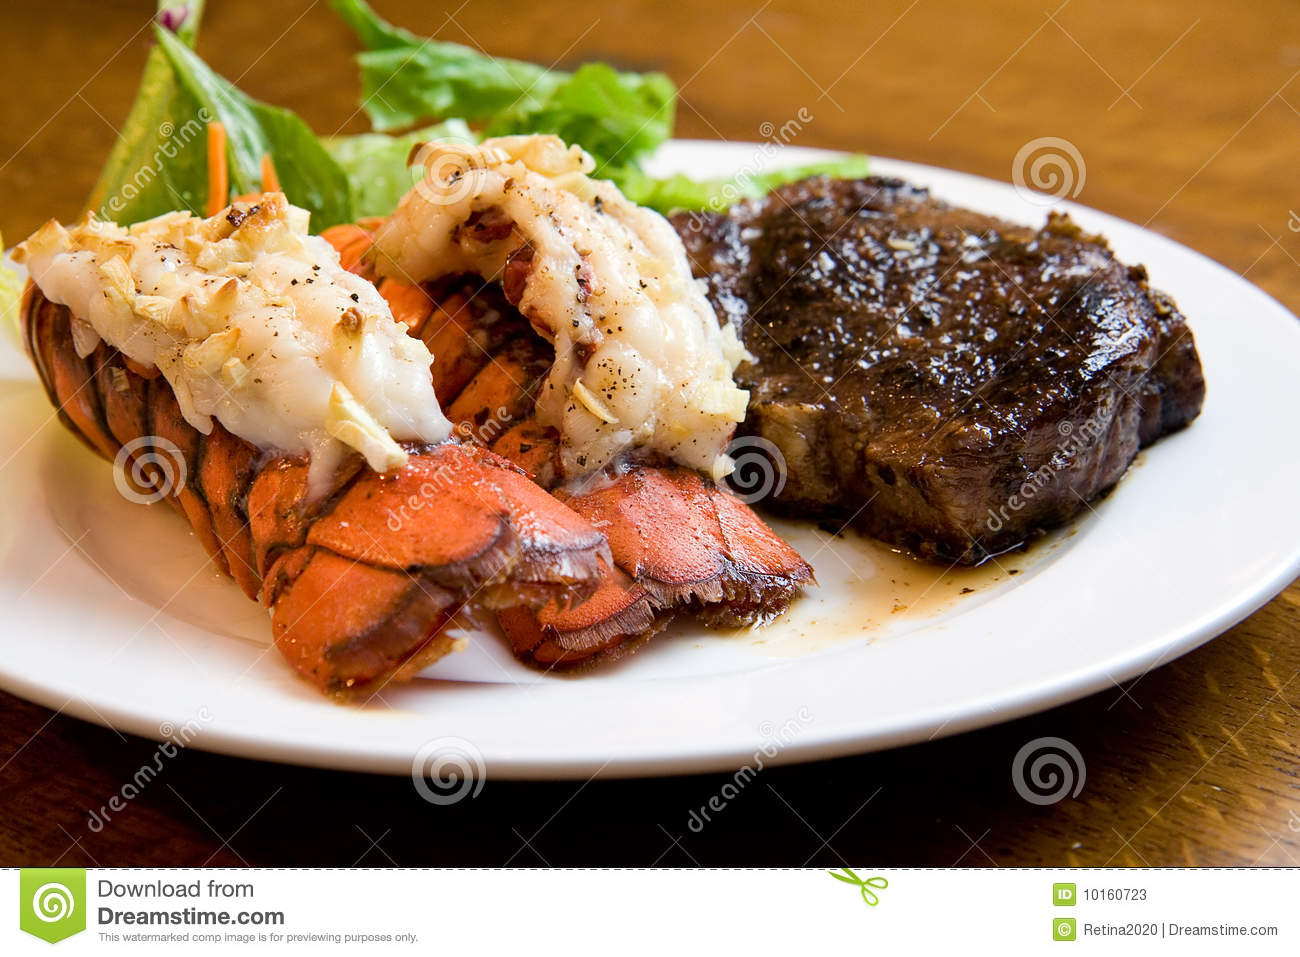 Juicy Grade AAA Angus New York Strip sirloin steak with Lobster Tails.